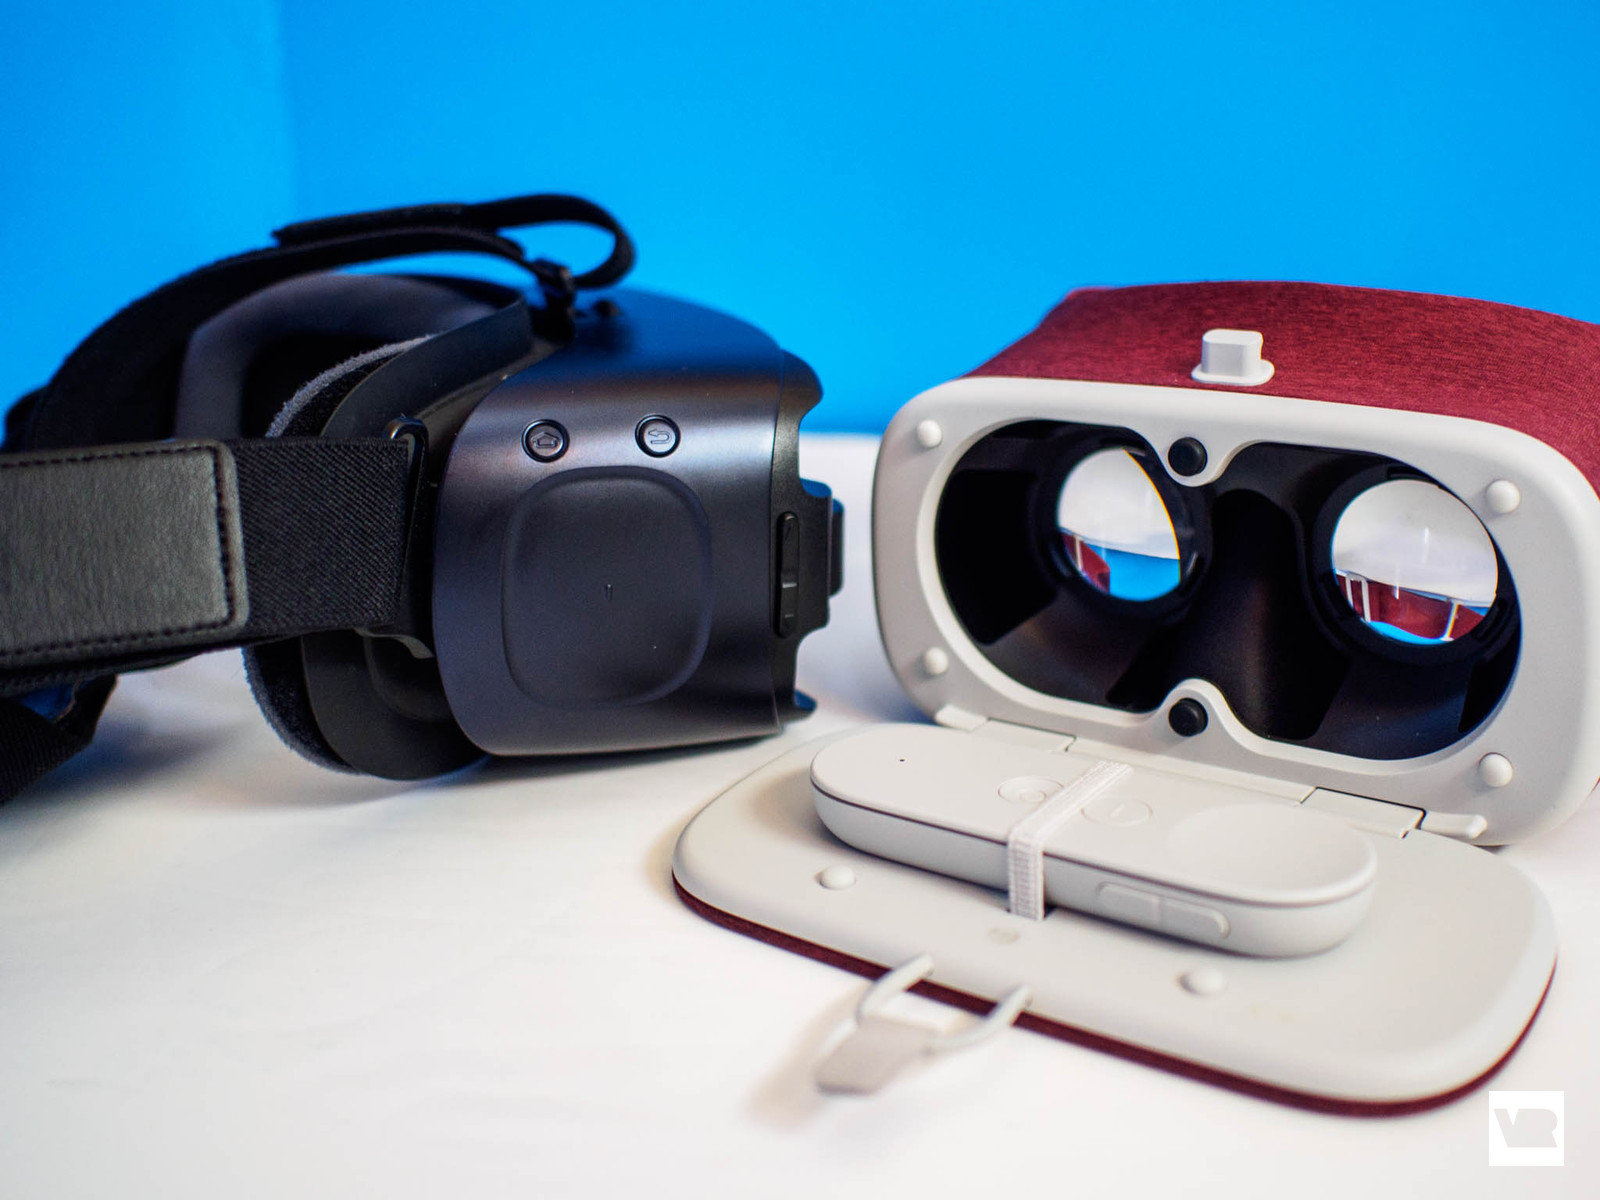 samsung gear vr vs google daydream view which should you buy vrheads